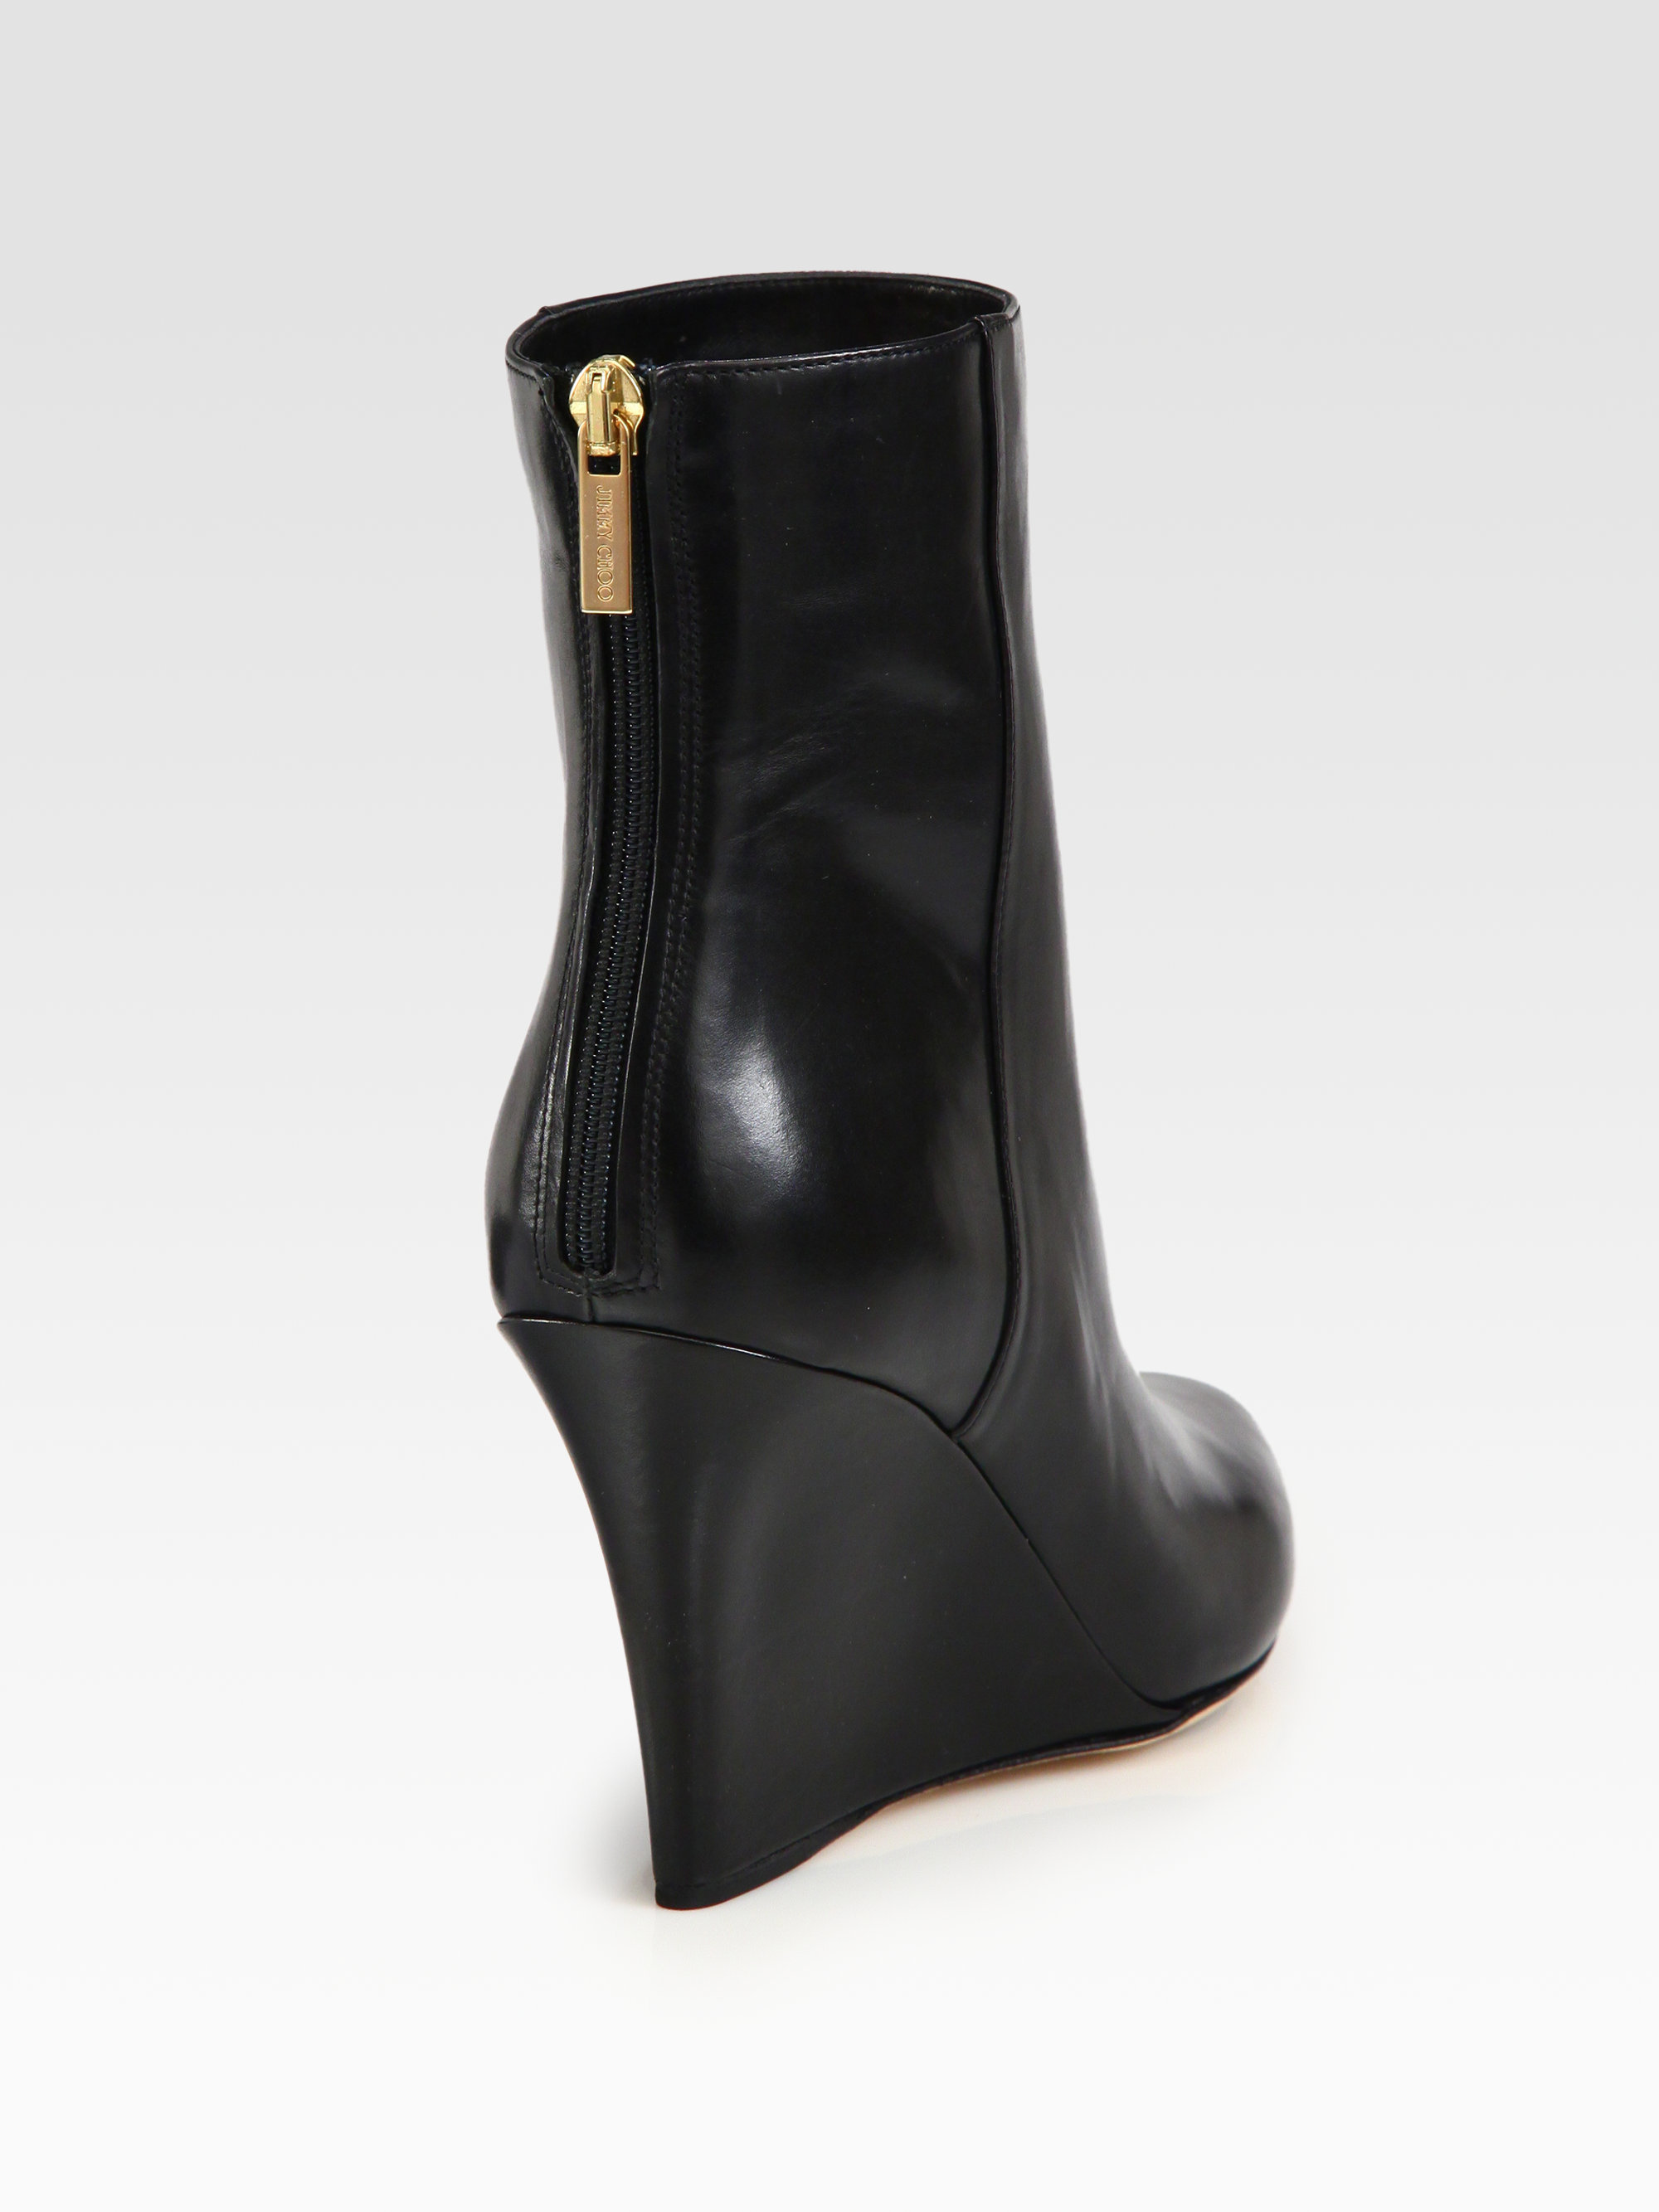 cef37d39d6e Lyst - Jimmy Choo Mayor Leather Wedge Ankle Boots in Black